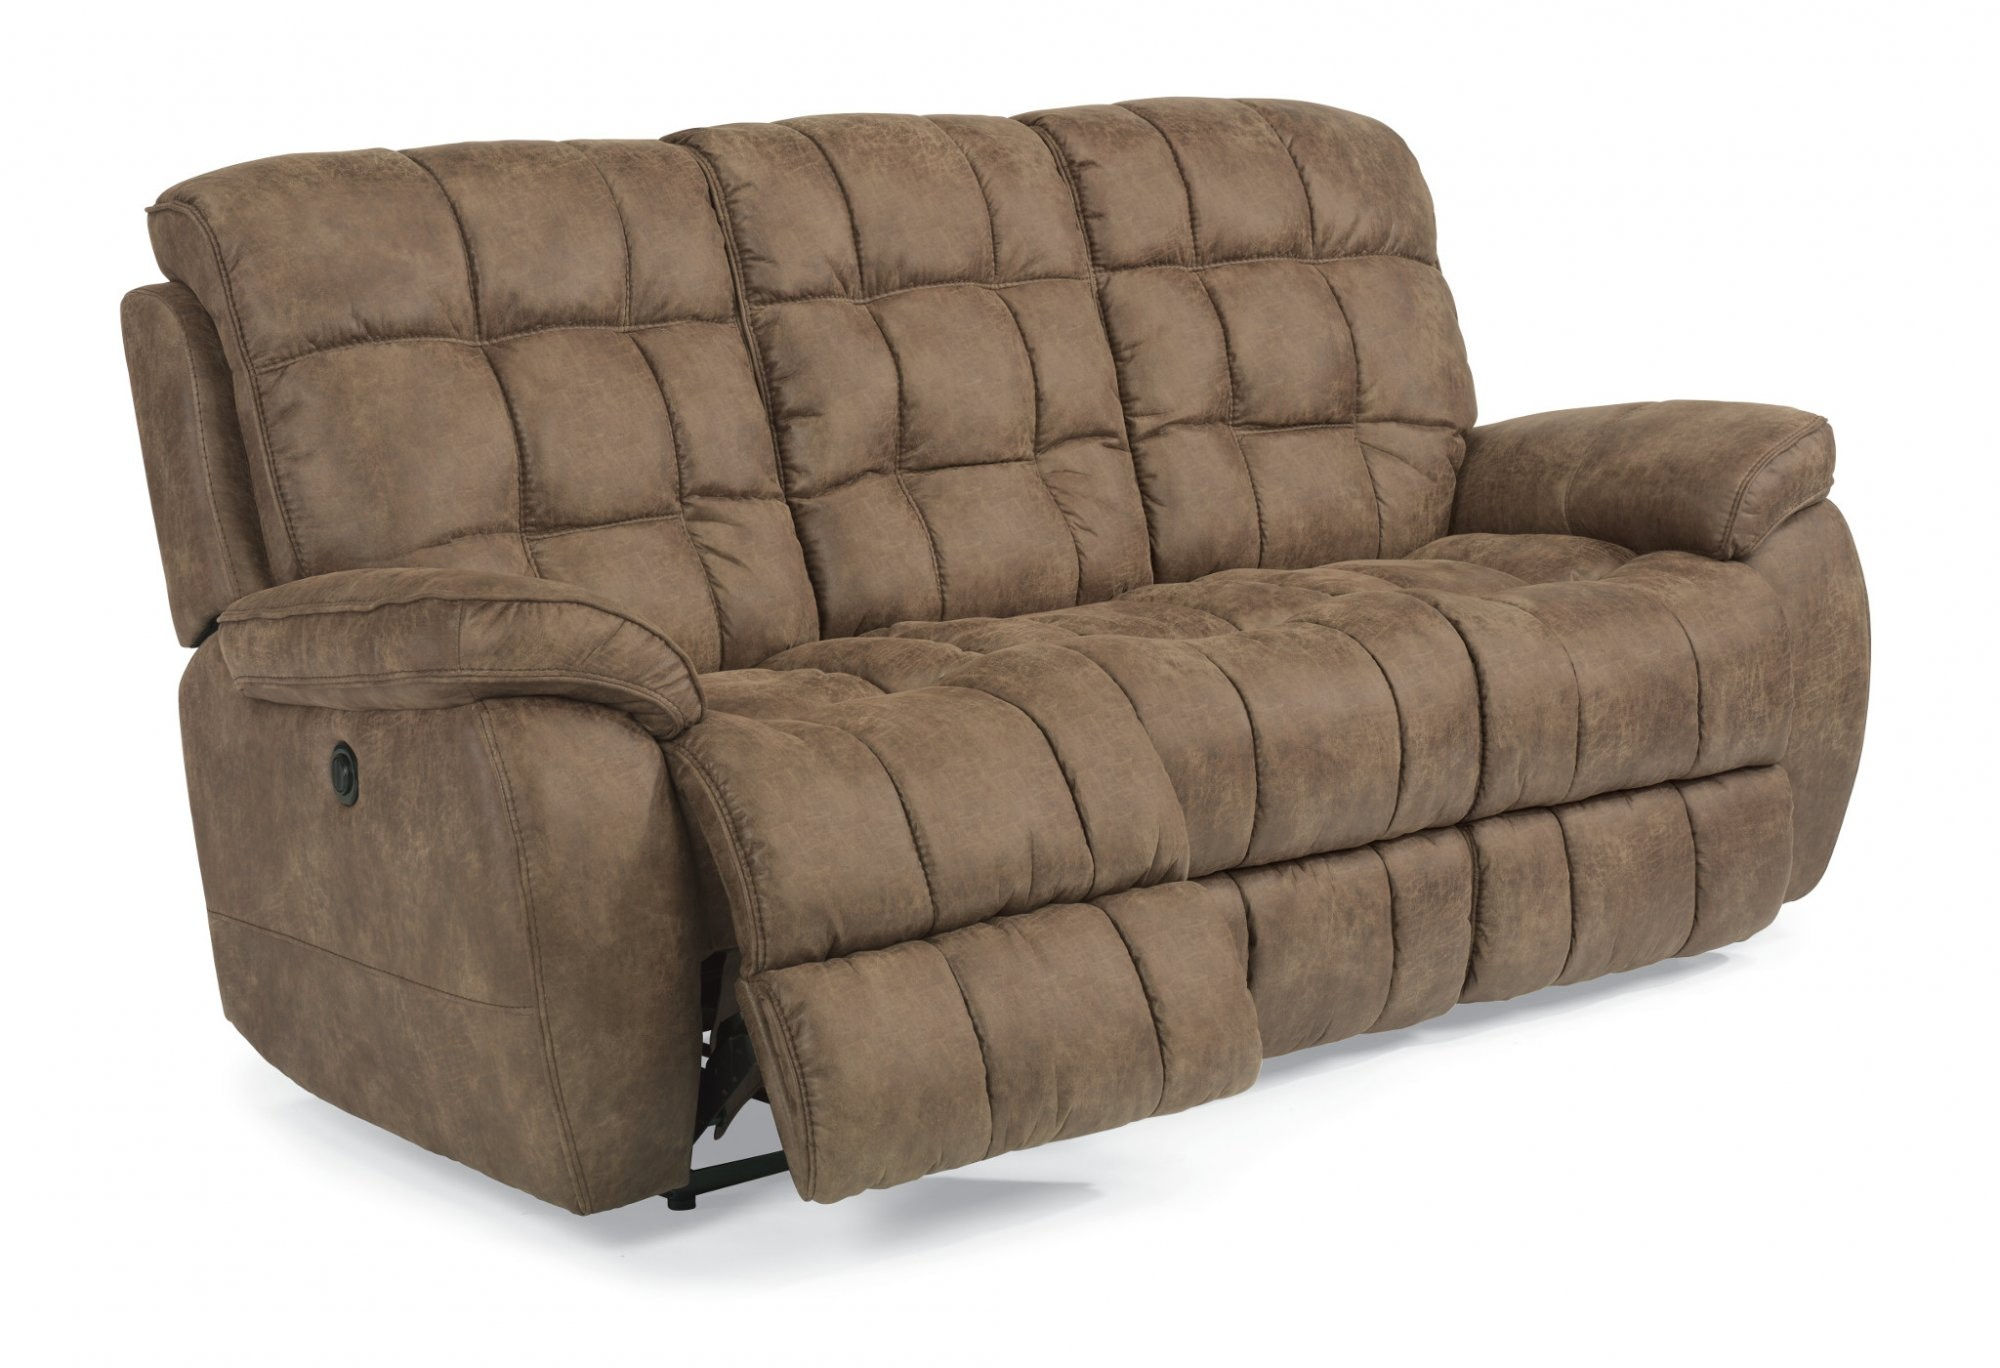 ... Kick Up Your Feet, And Enjoy The Comfort You Deserve. Power Makes It  Easy To Operate And Relax. Nashua Power Reclining Sofa 038149 Flexsteel